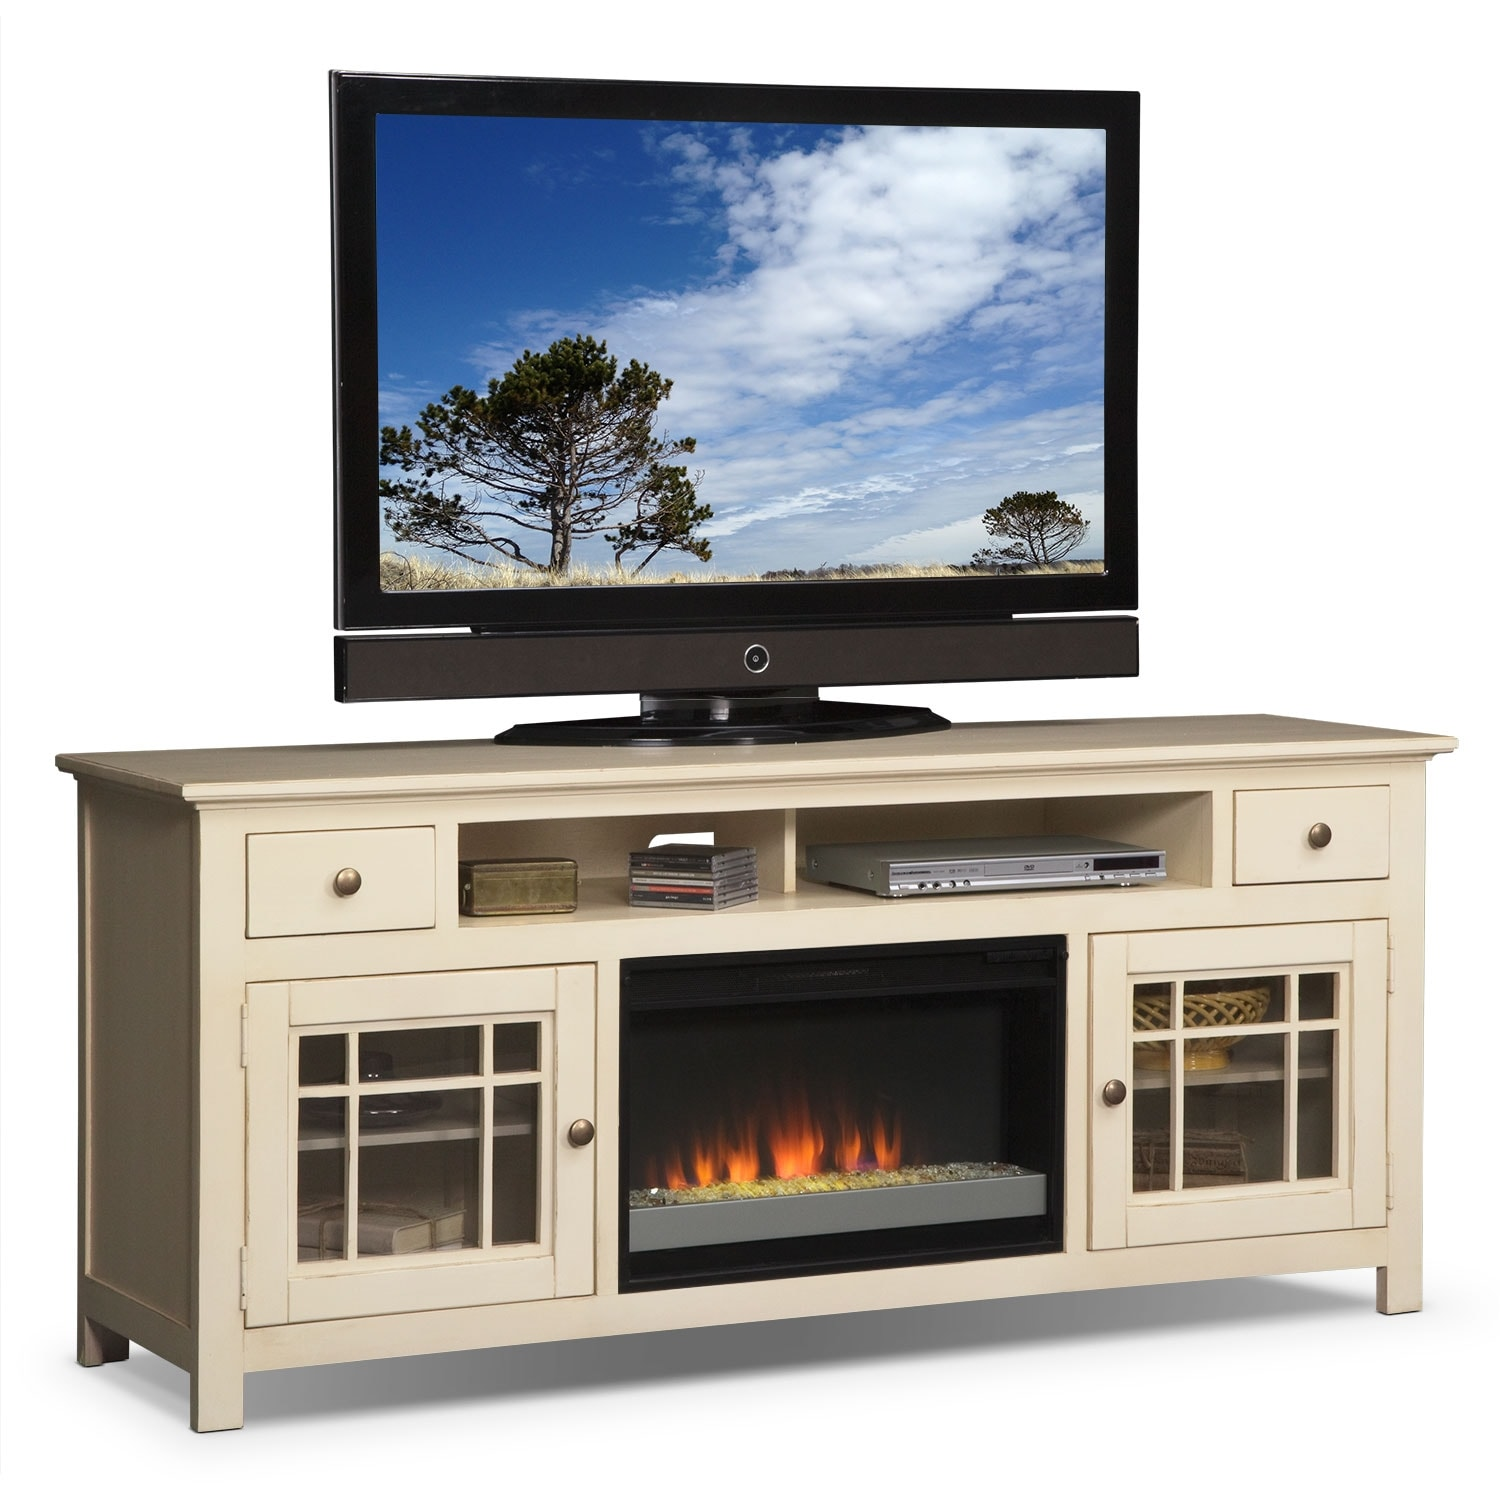 """Entertainment Furniture - Merrick 74"""" Fireplace TV Stand with Contemporary Insert - White"""